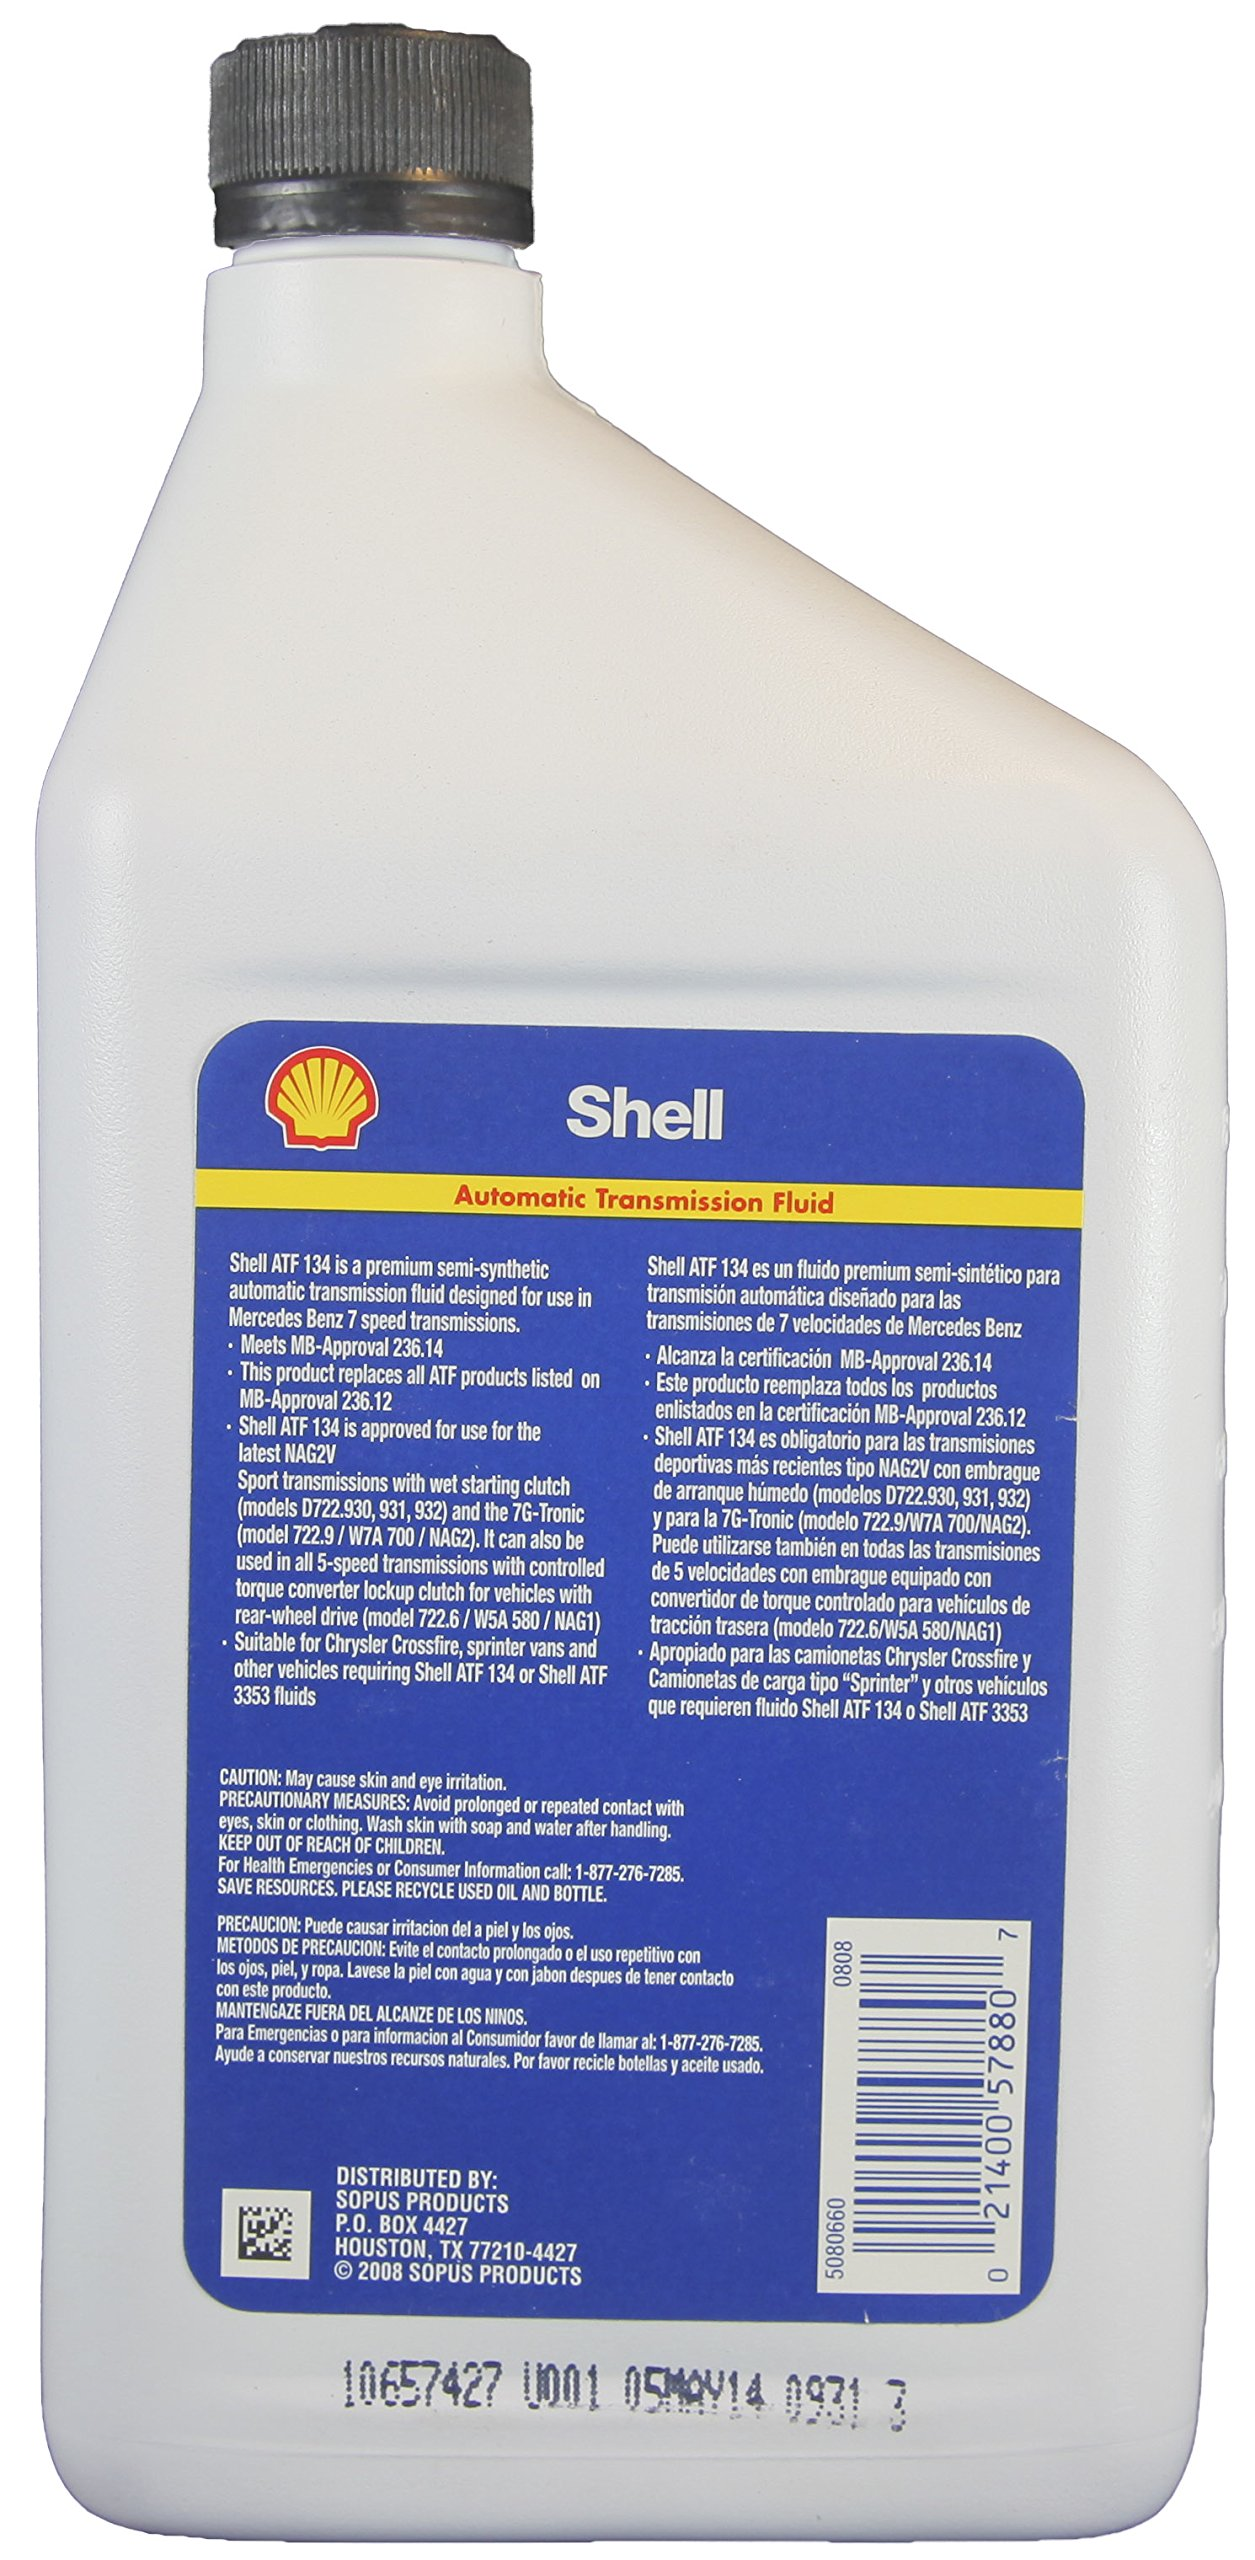 Shell ATF 134 Mercedes Benz Transmission Fluid, MB 236.14 and 236.12 - 6 Count (1 QT./946 ml. each) by Shell